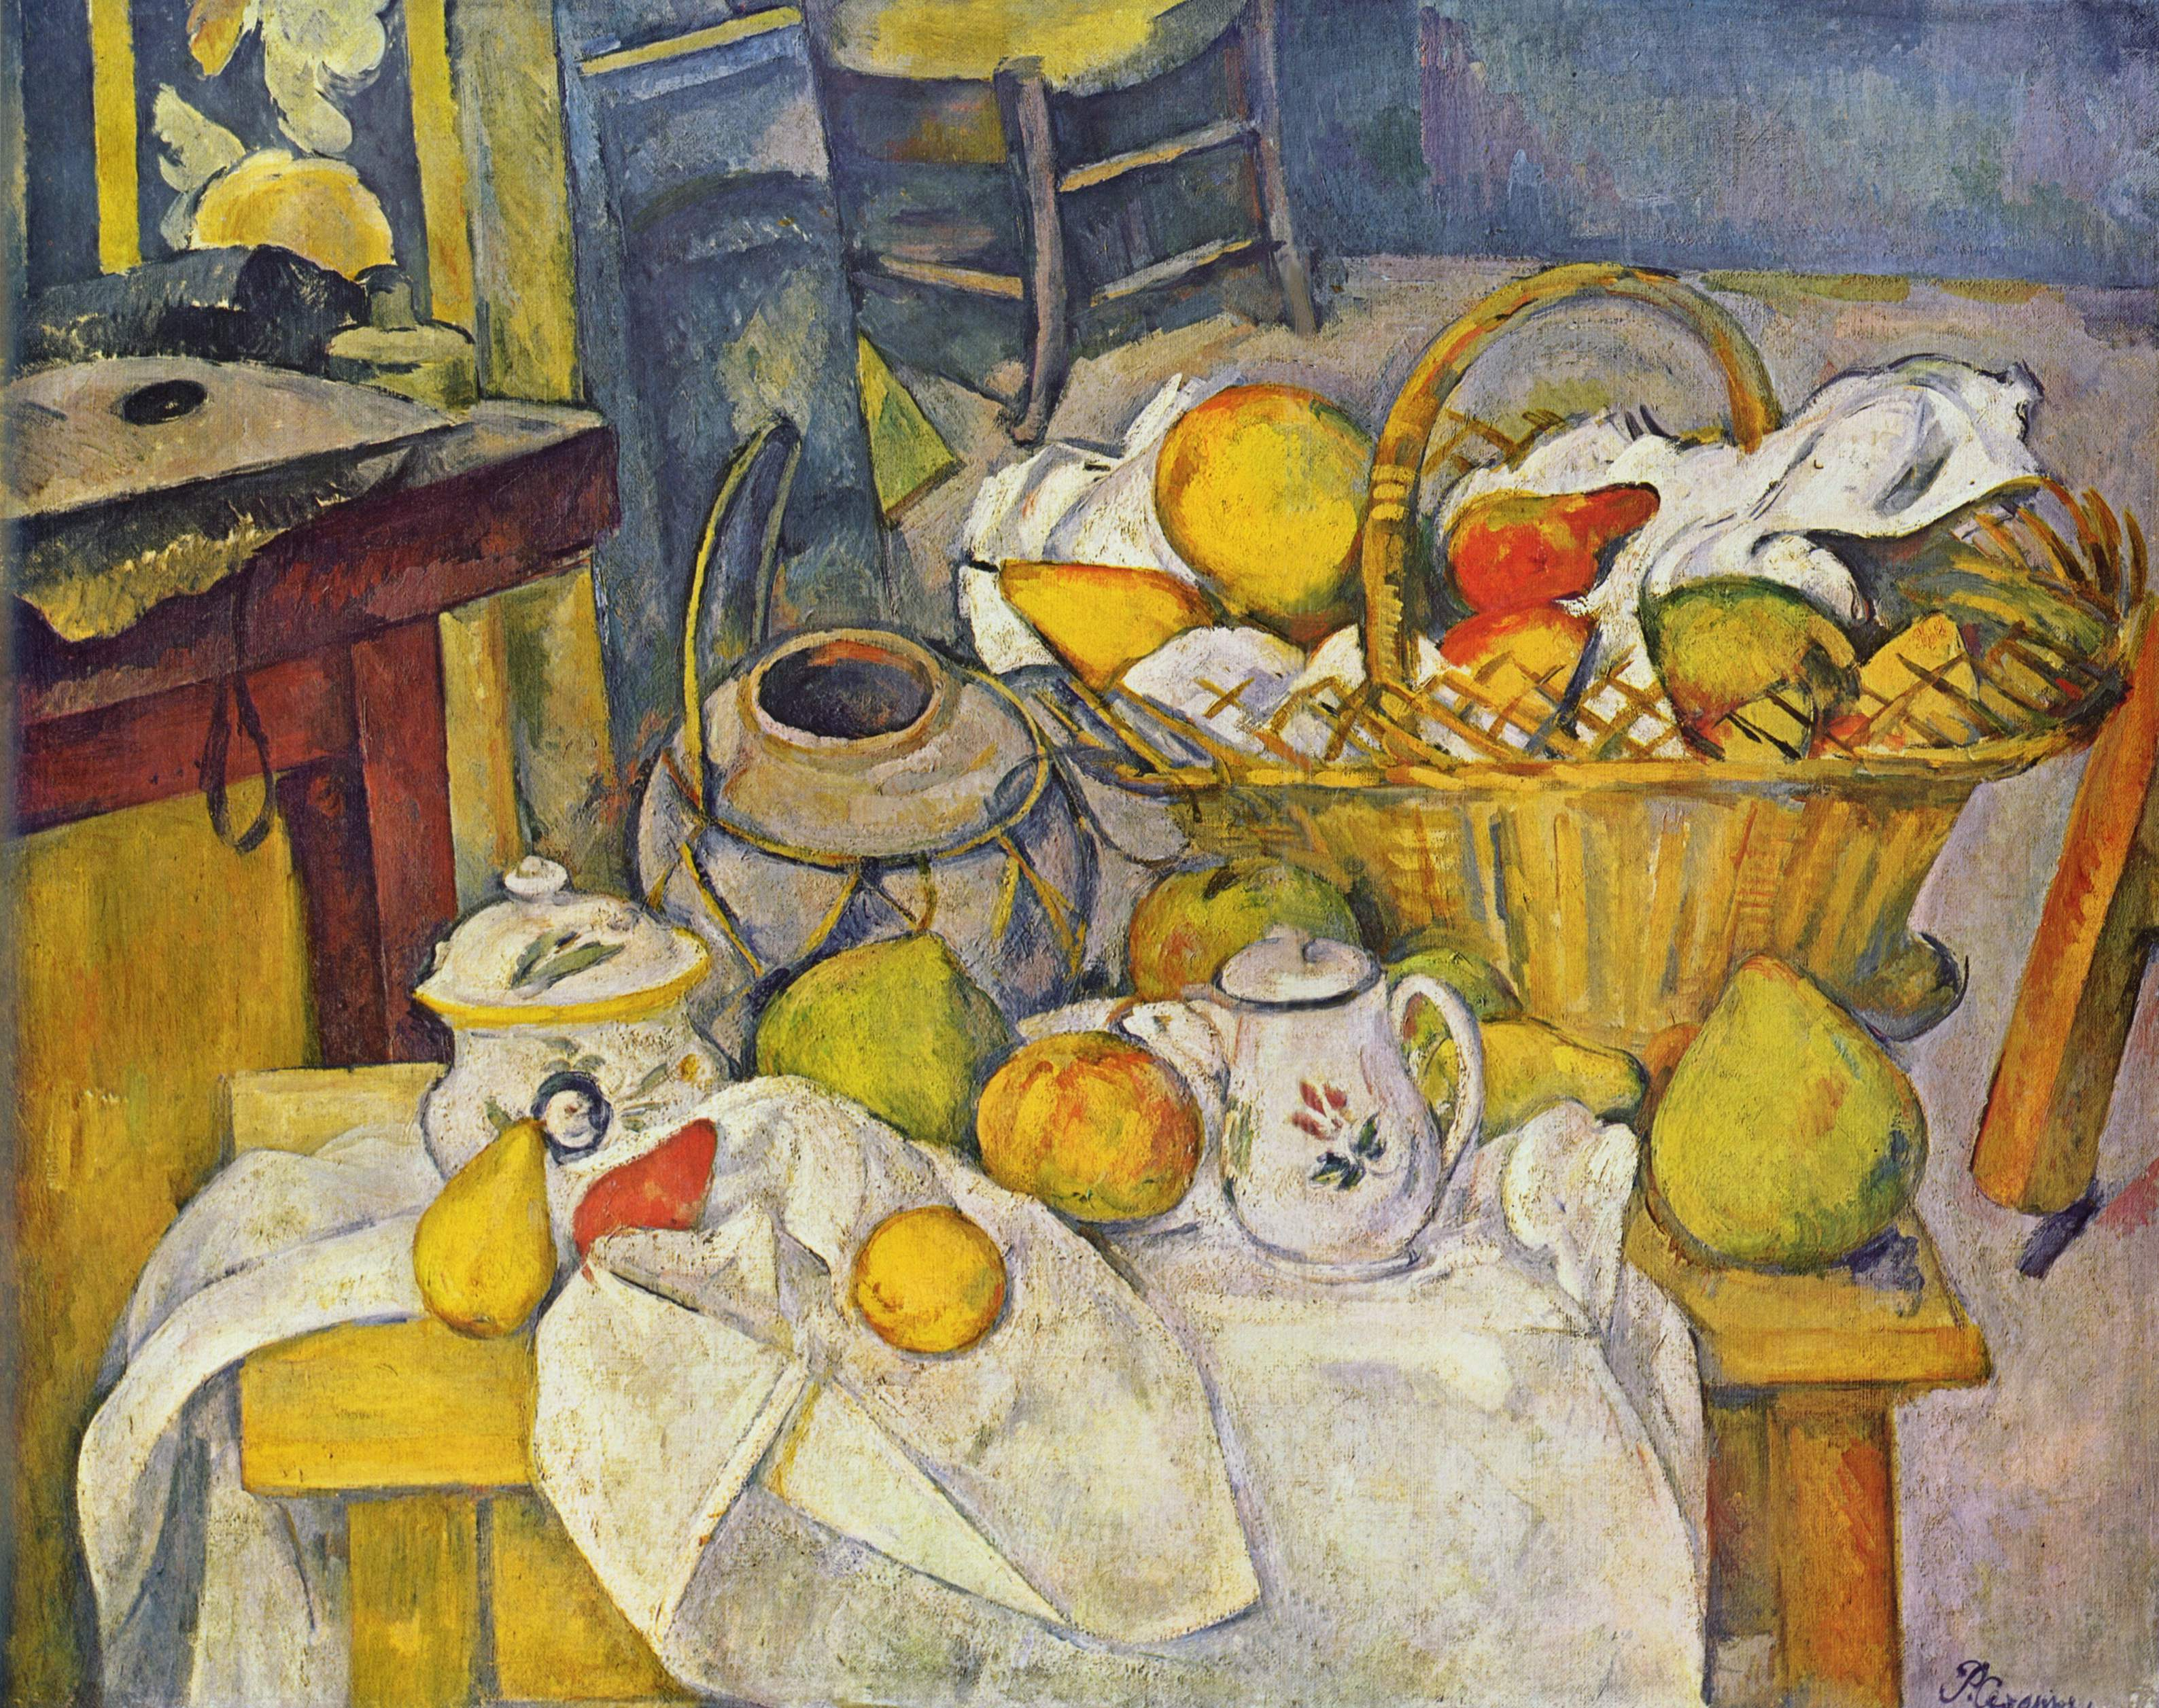 the life of paul cezanne This list of paintings by the french painter paul cézanne is incomplete the artistic career of cézanne spanned more than forty years, from roughly 1860 to 1906.